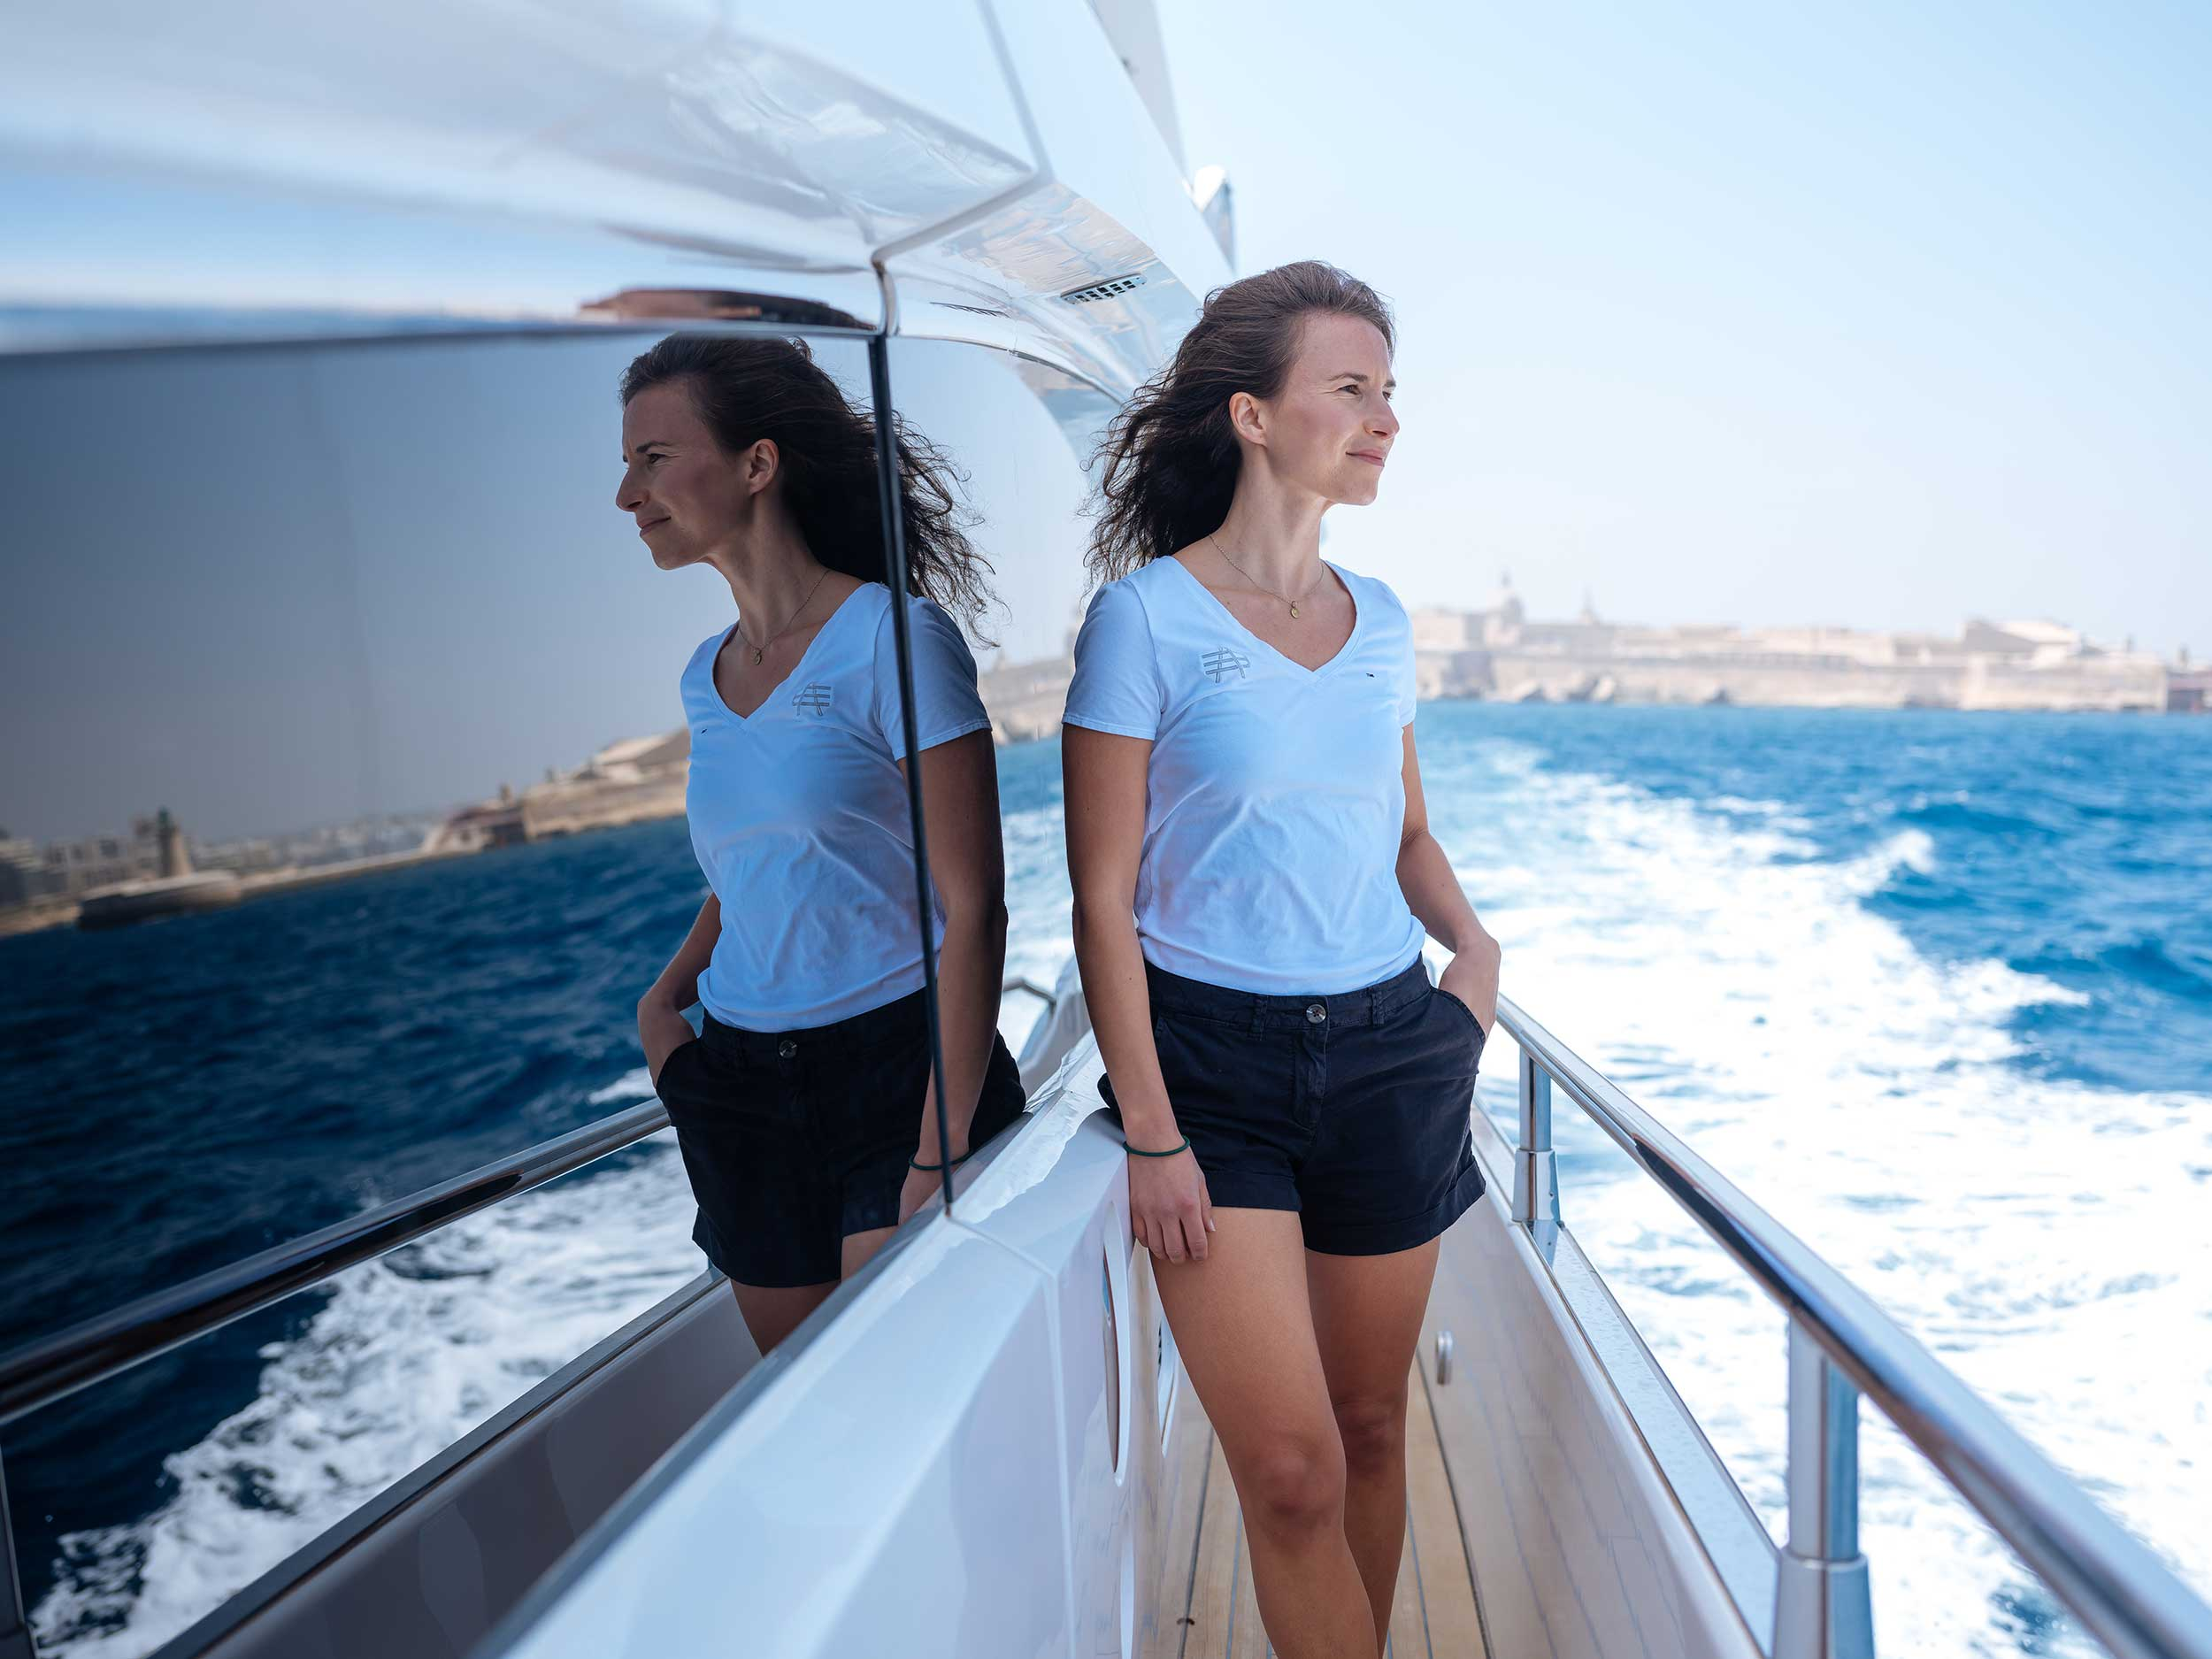 On Location with Sunseeker around the coast of Morocco